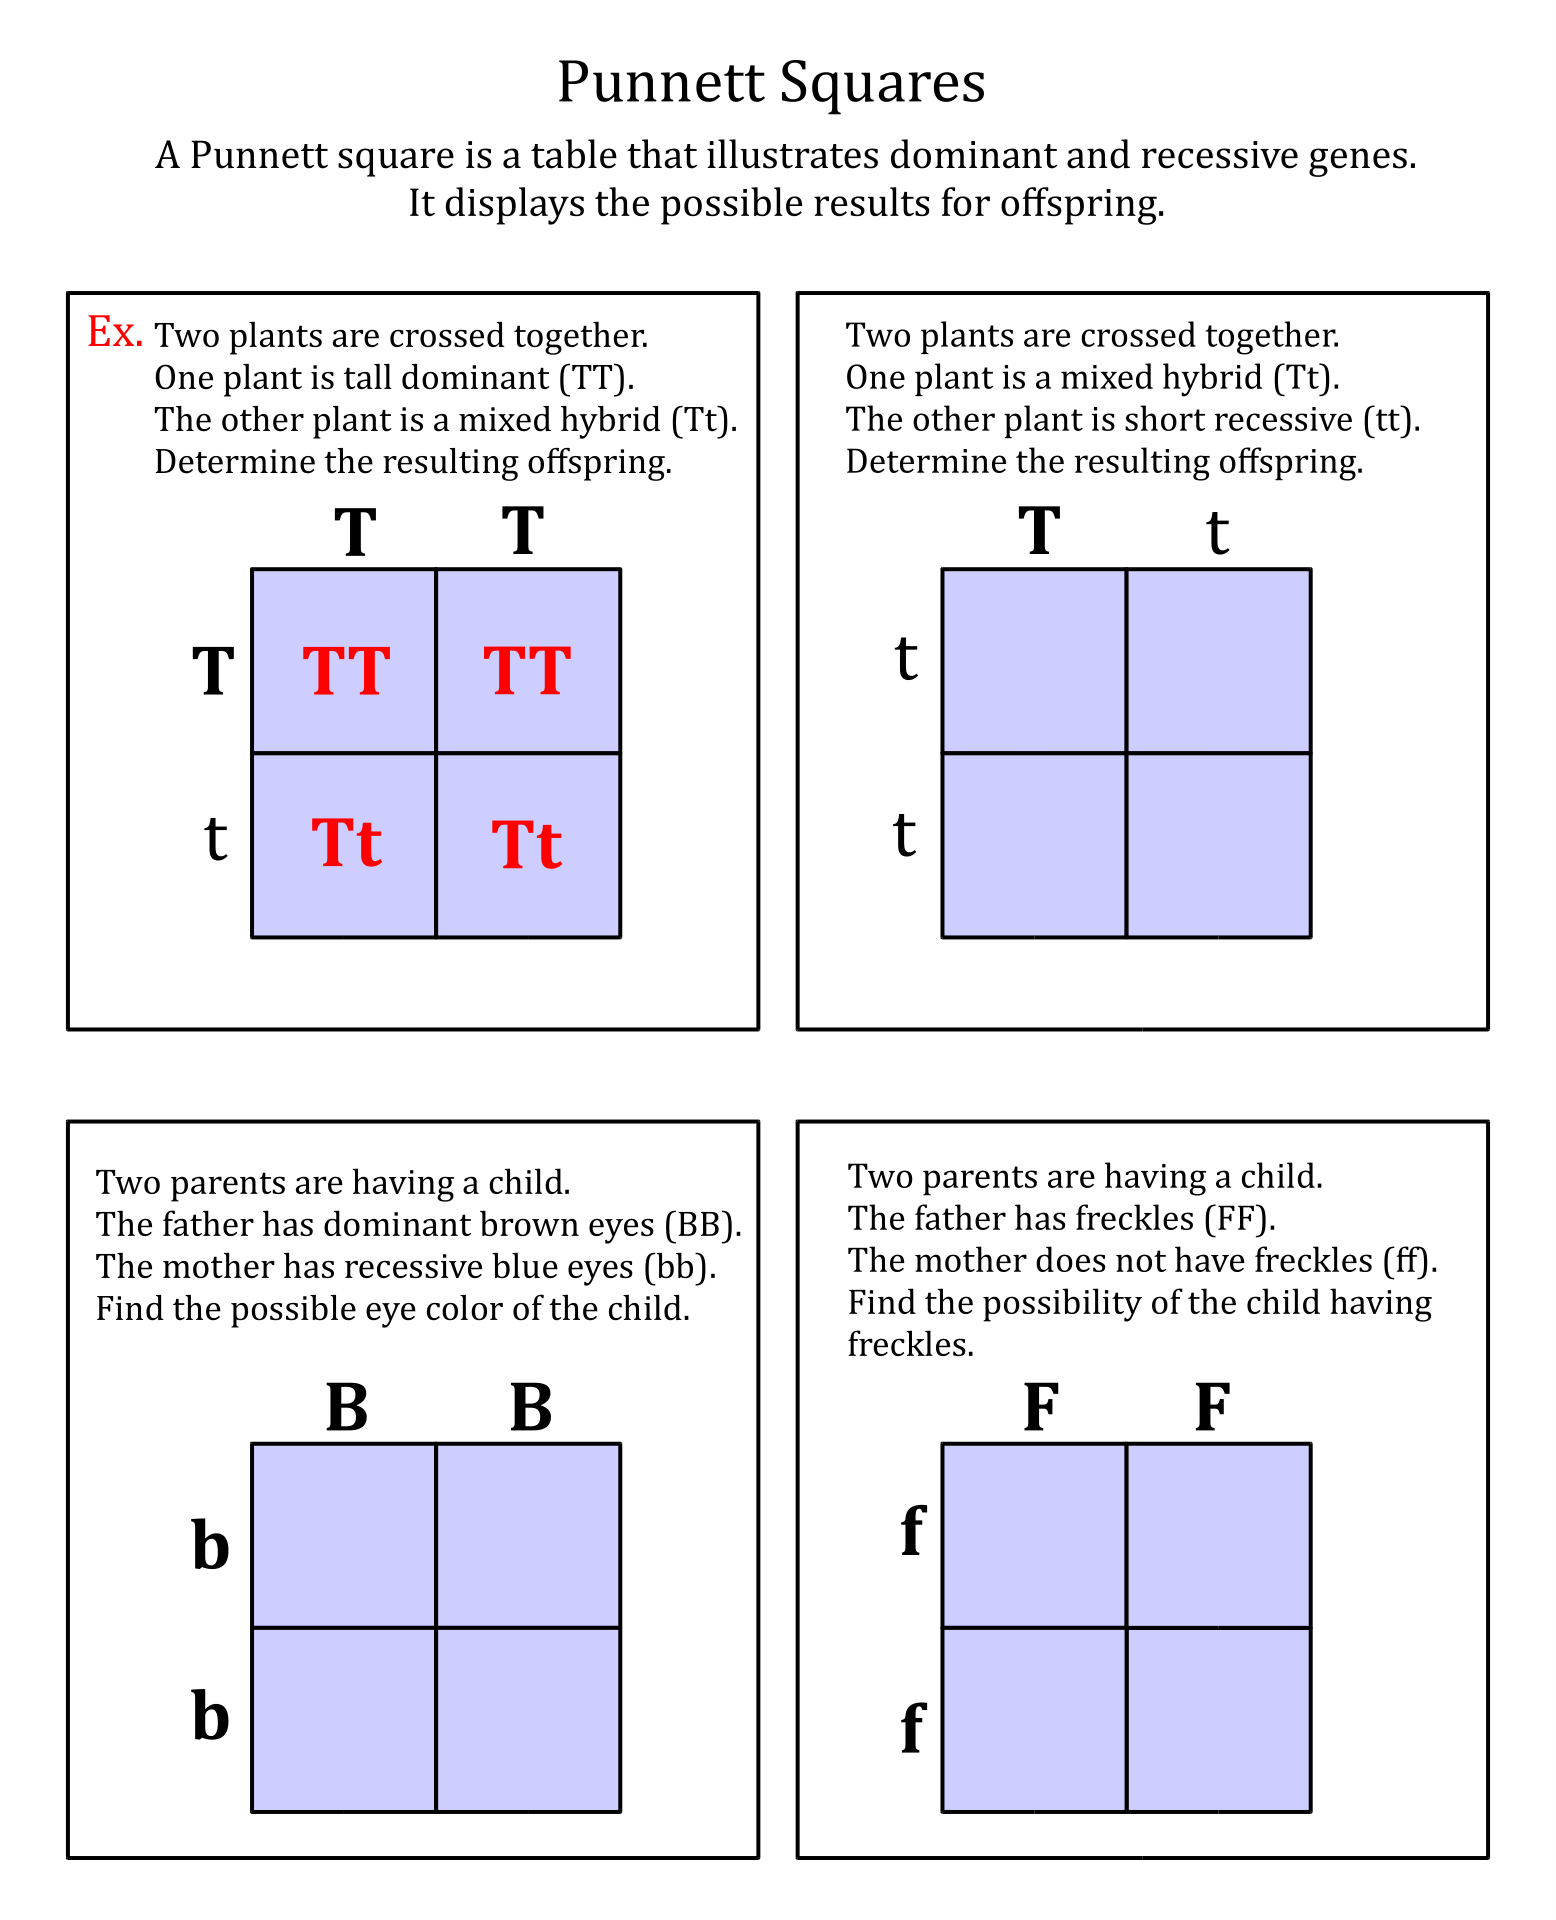 Punnet Square Worksheets - Khayav